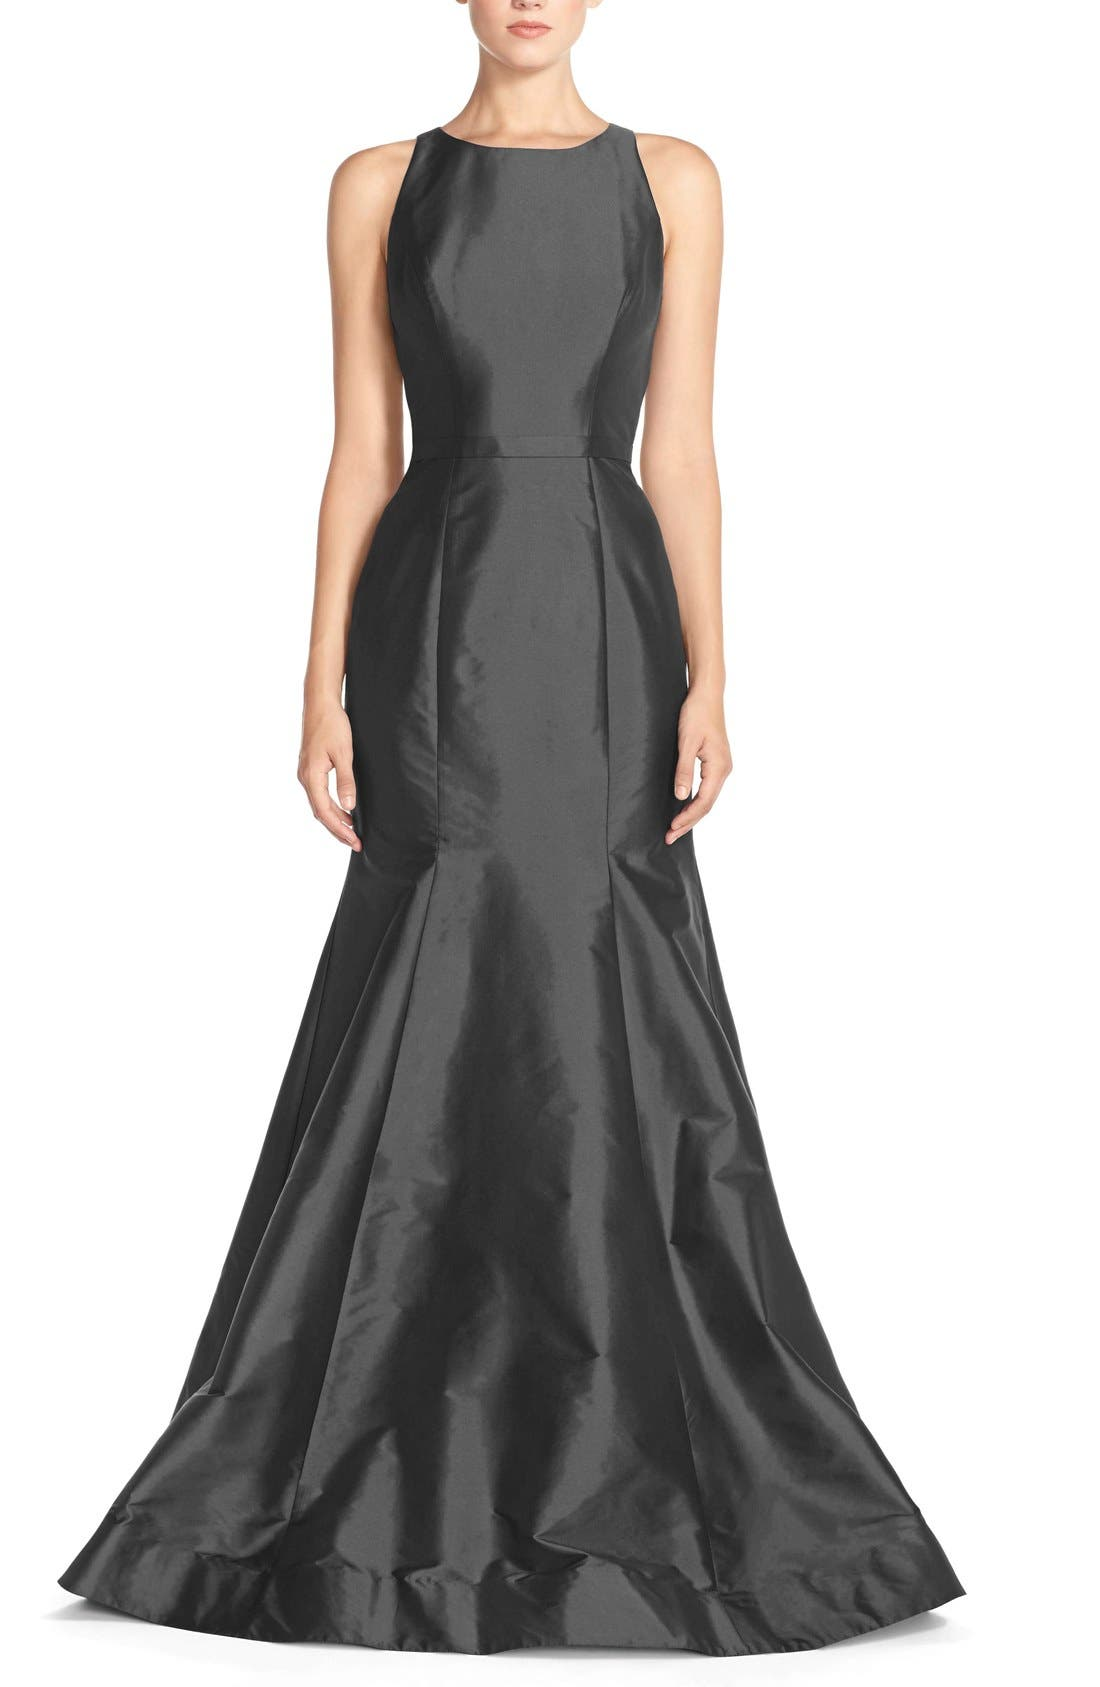 Main Image - Monique Lhuillier Bridesmaids Back Cutout Taffeta Mermaid Gown